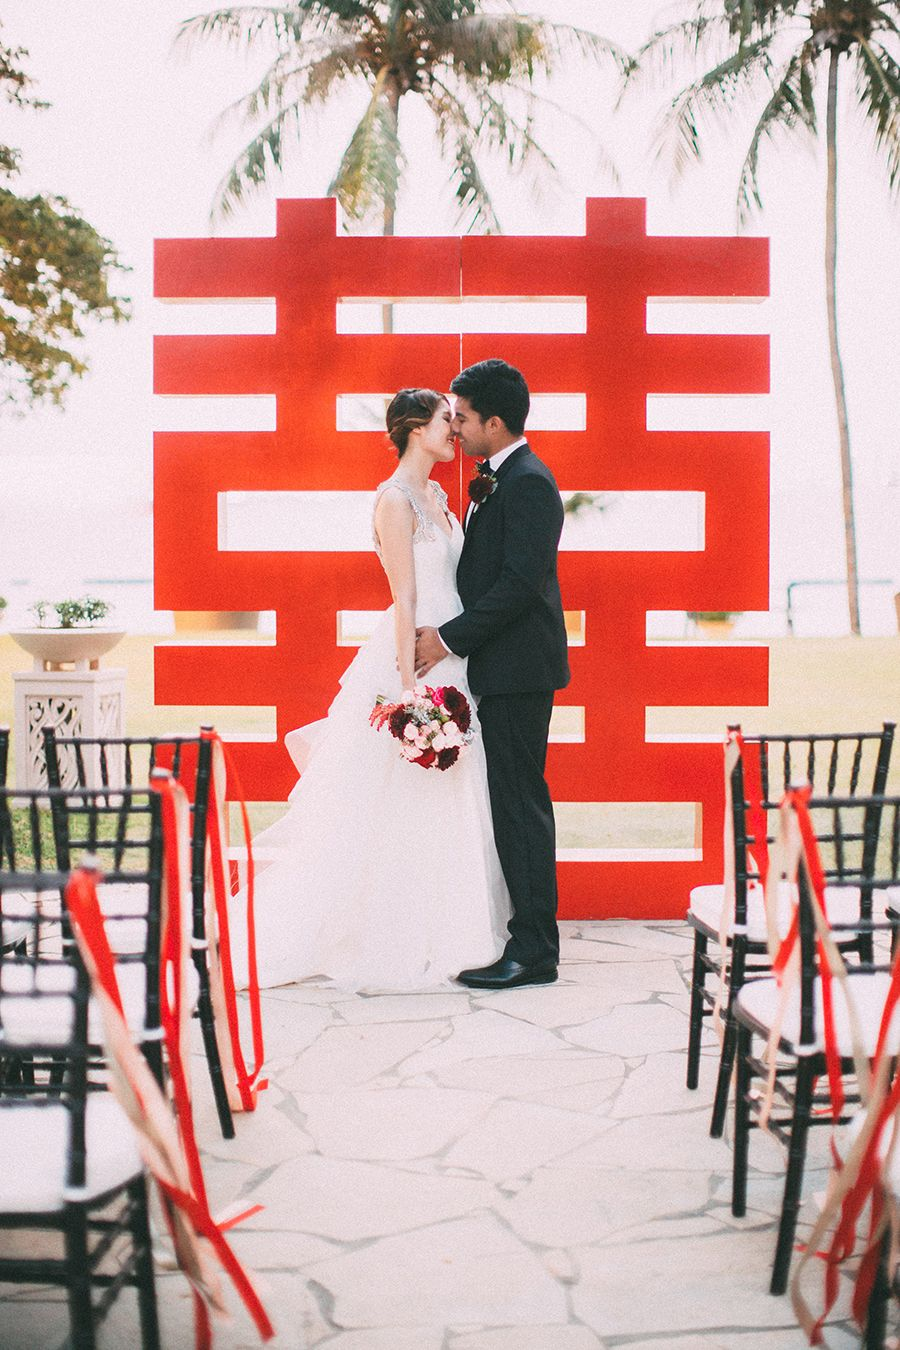 wedding reception photo booth singapore%0A Red   double happiness   wedding backdrop    The Wedding Scoop u    s Top     Florals and